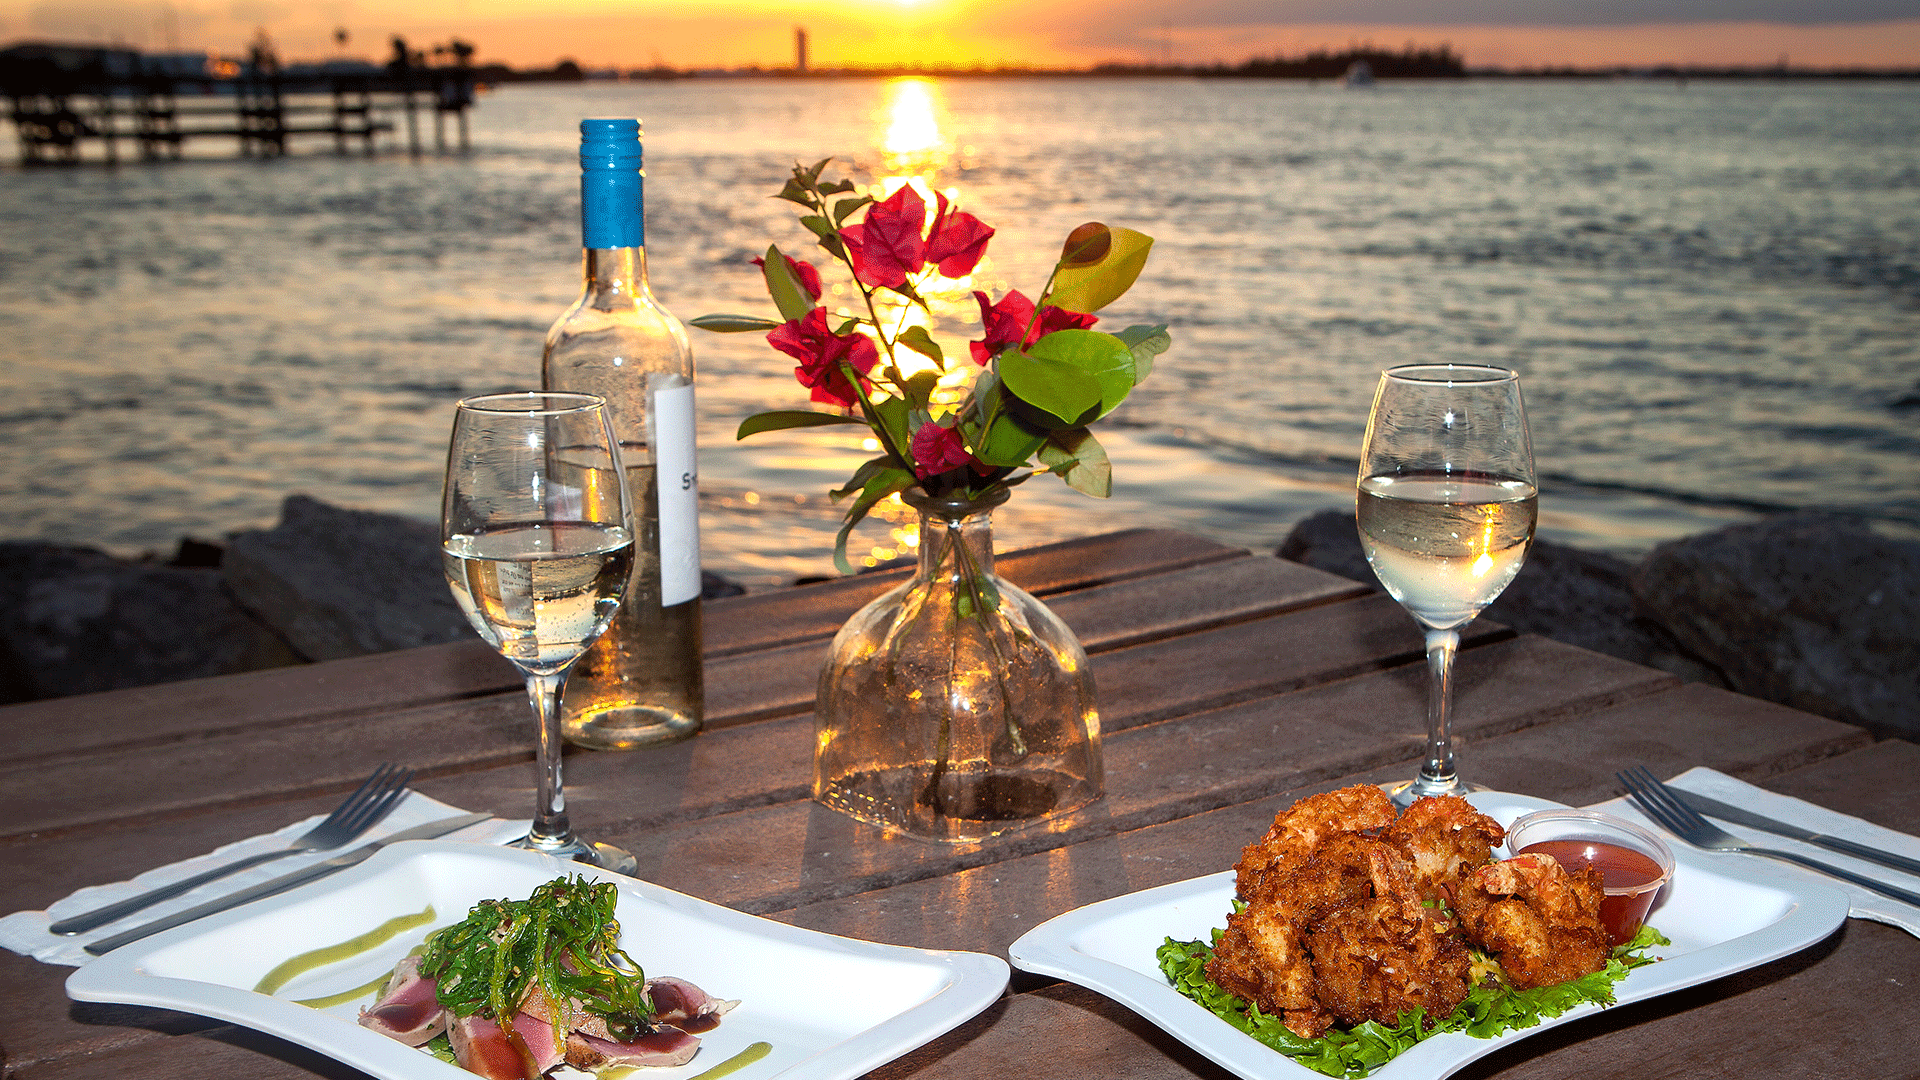 Sunset Dining in St. Lucie County